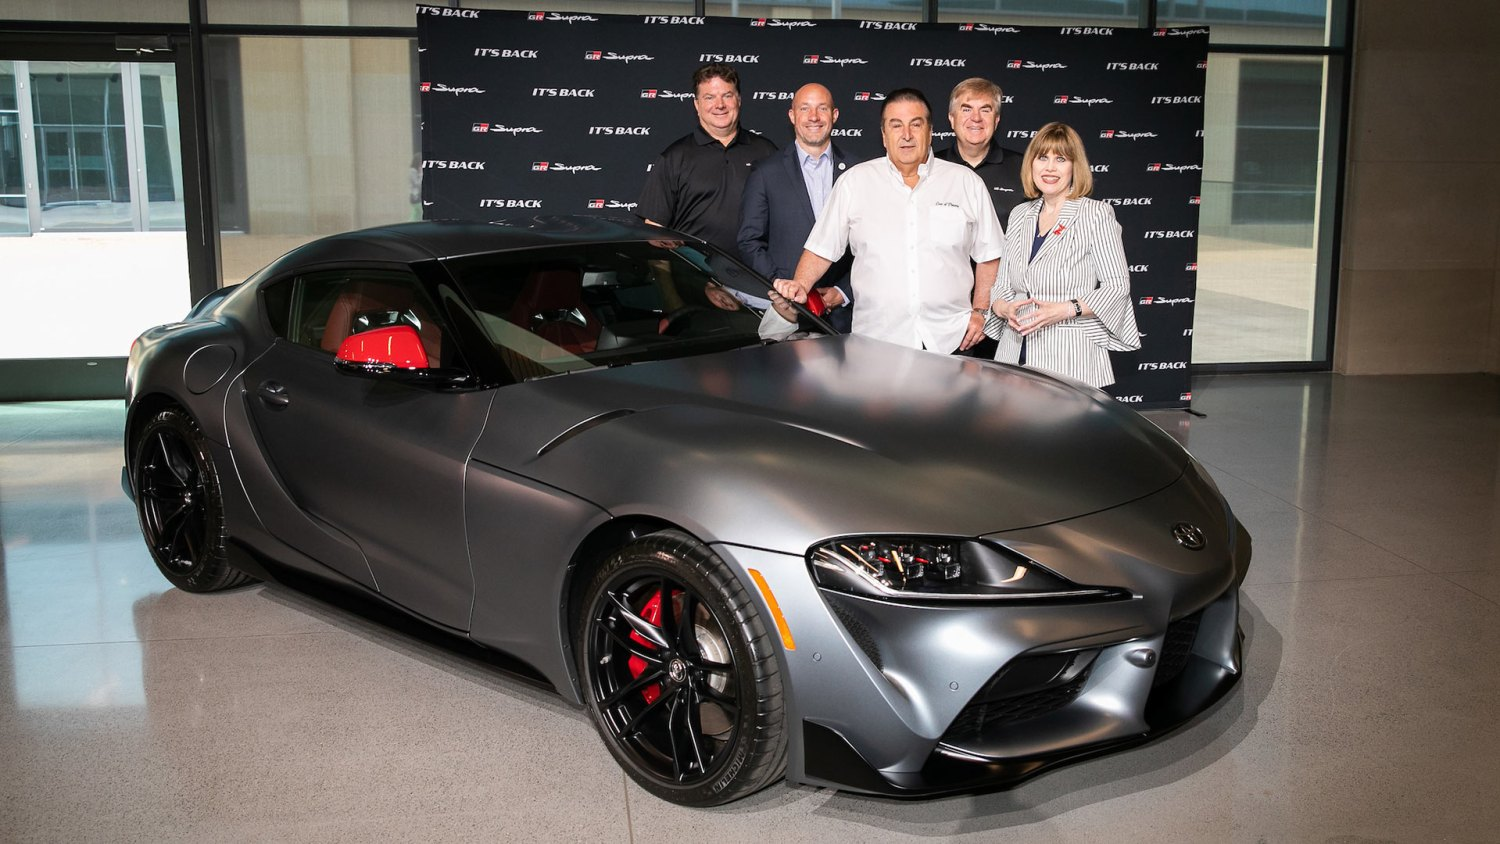 Auction winner collects first 2020 Toyota Supra